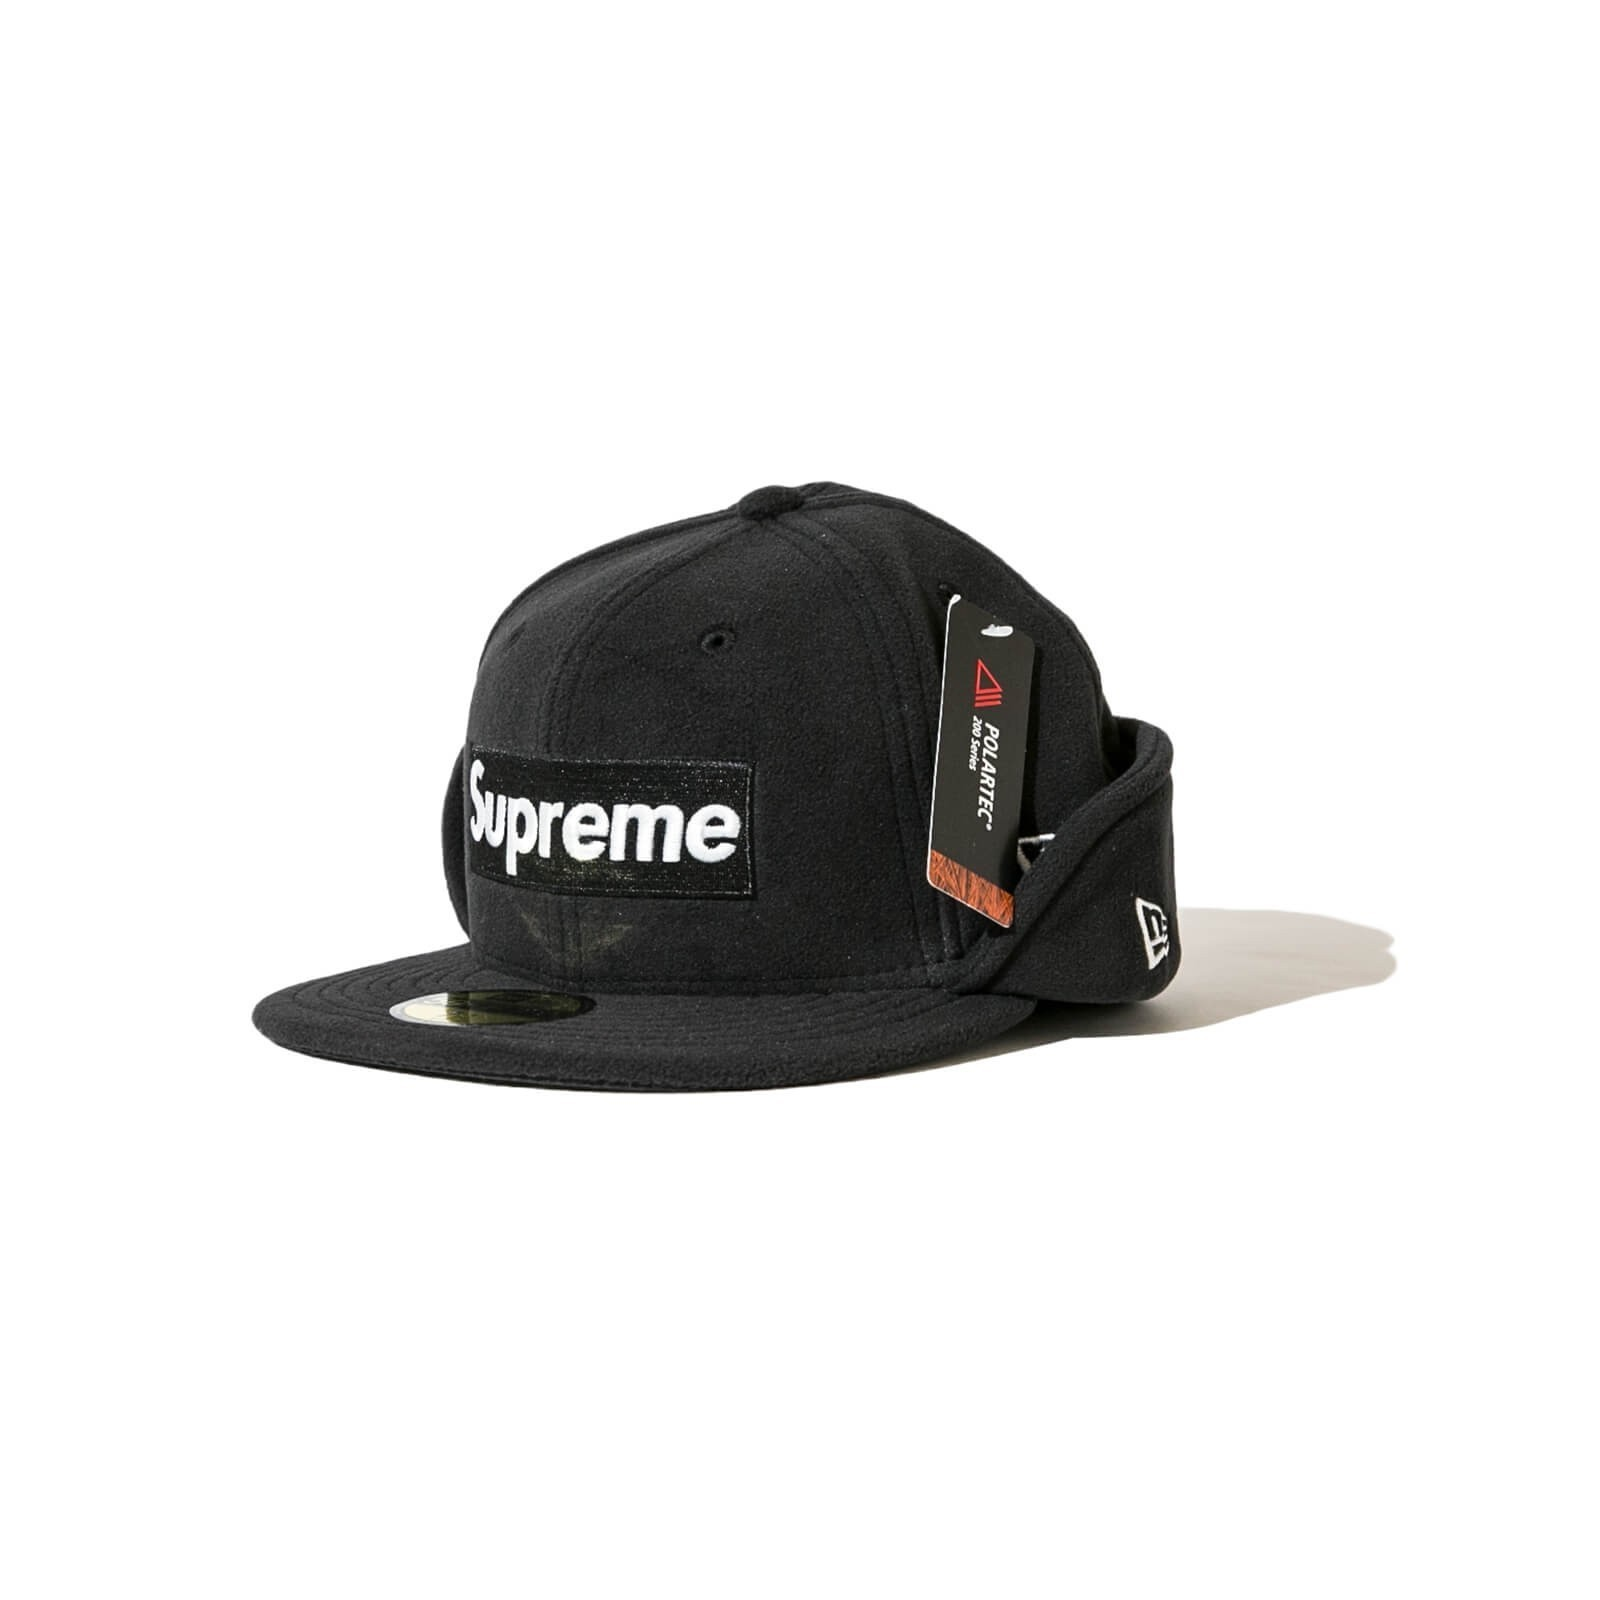 ☆国内即発送込☆Supreme Polartec Ear Flap New Era 7 1/4 17AW